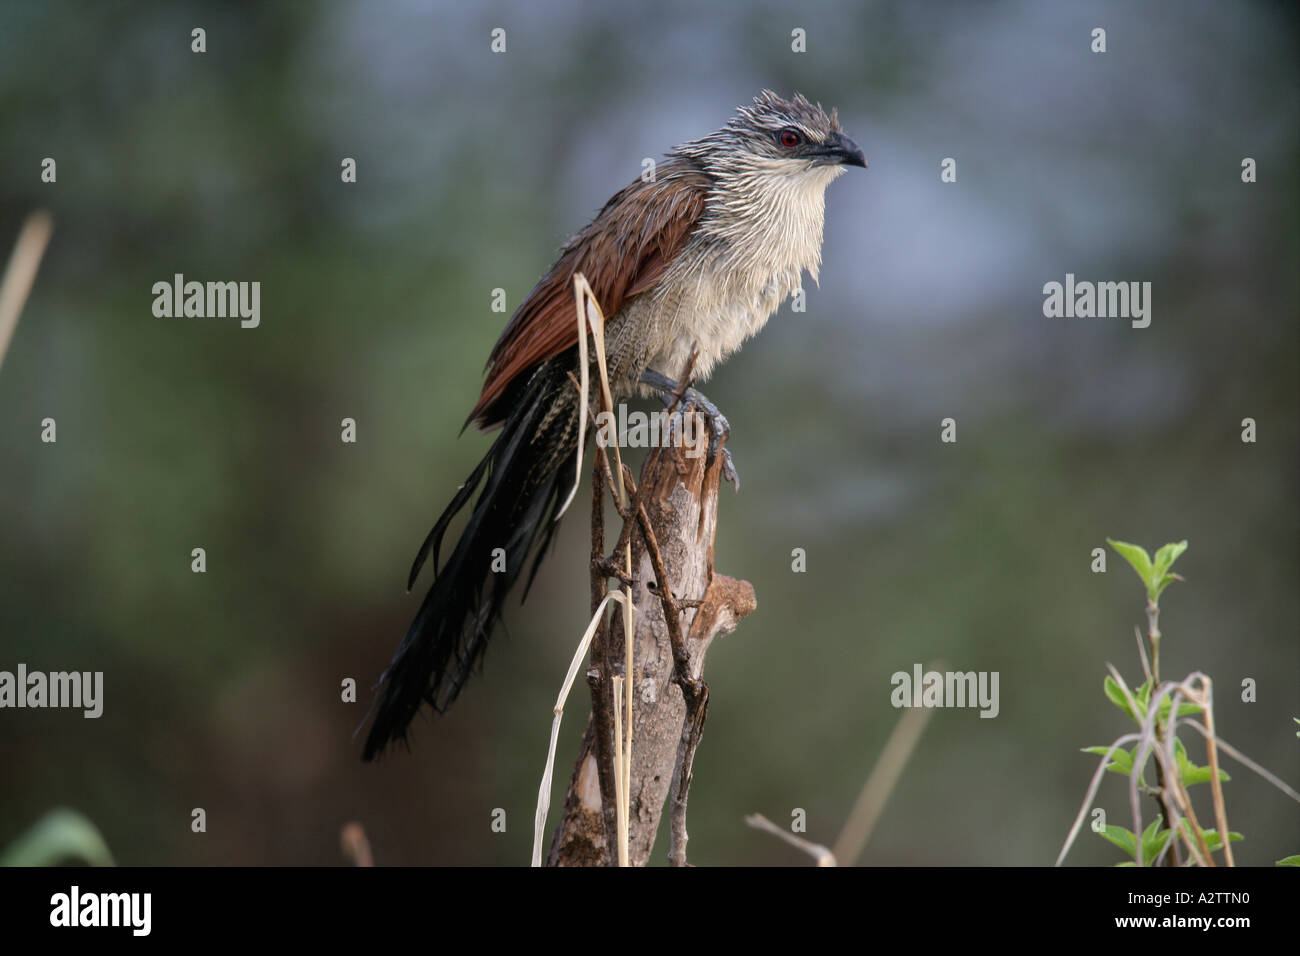 WHITE BROWED COUCAL Centropus superciliosus Tanzania - Stock Image